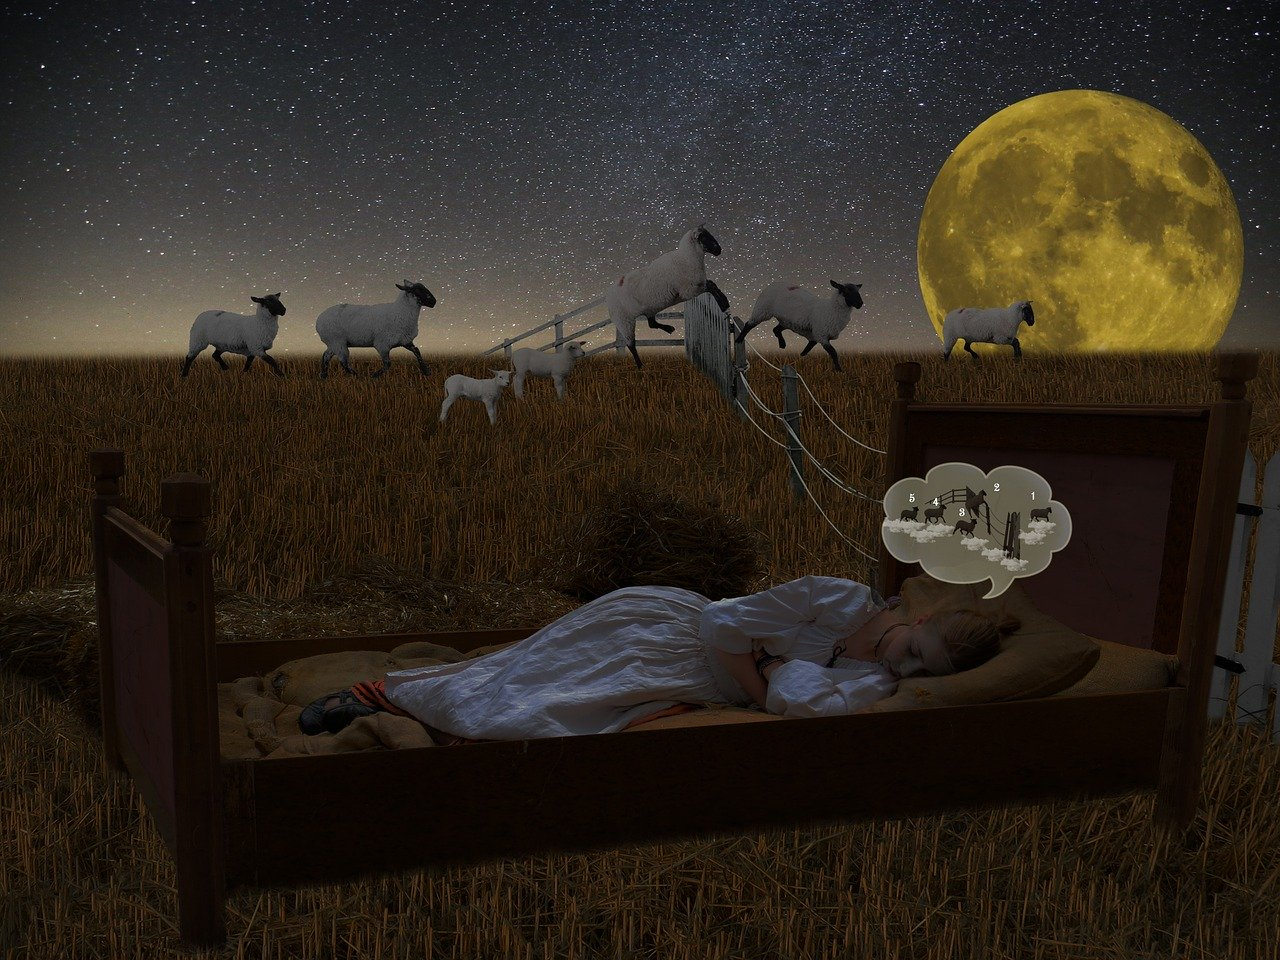 Insomnia Technique Bettter Than Counting Sheep